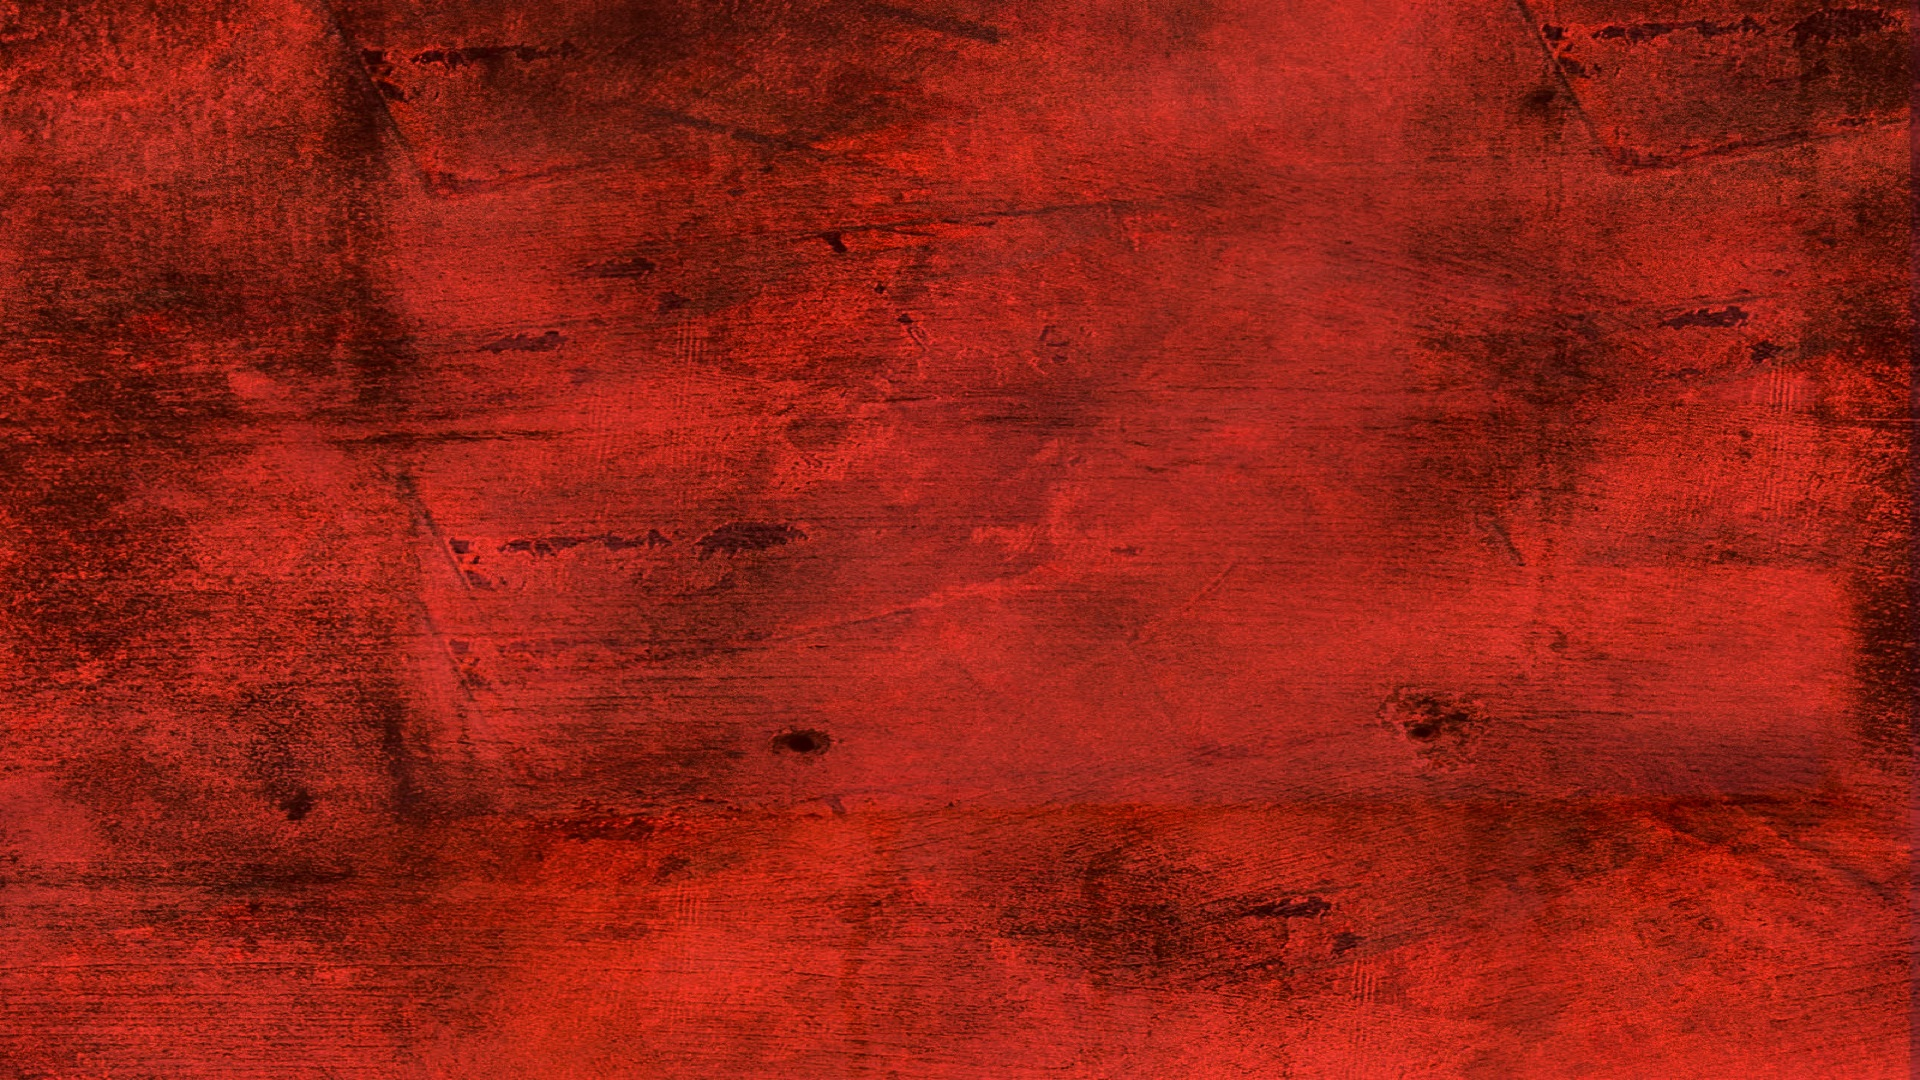 Red Texture Background - PowerPoint Backgrounds for Free ...